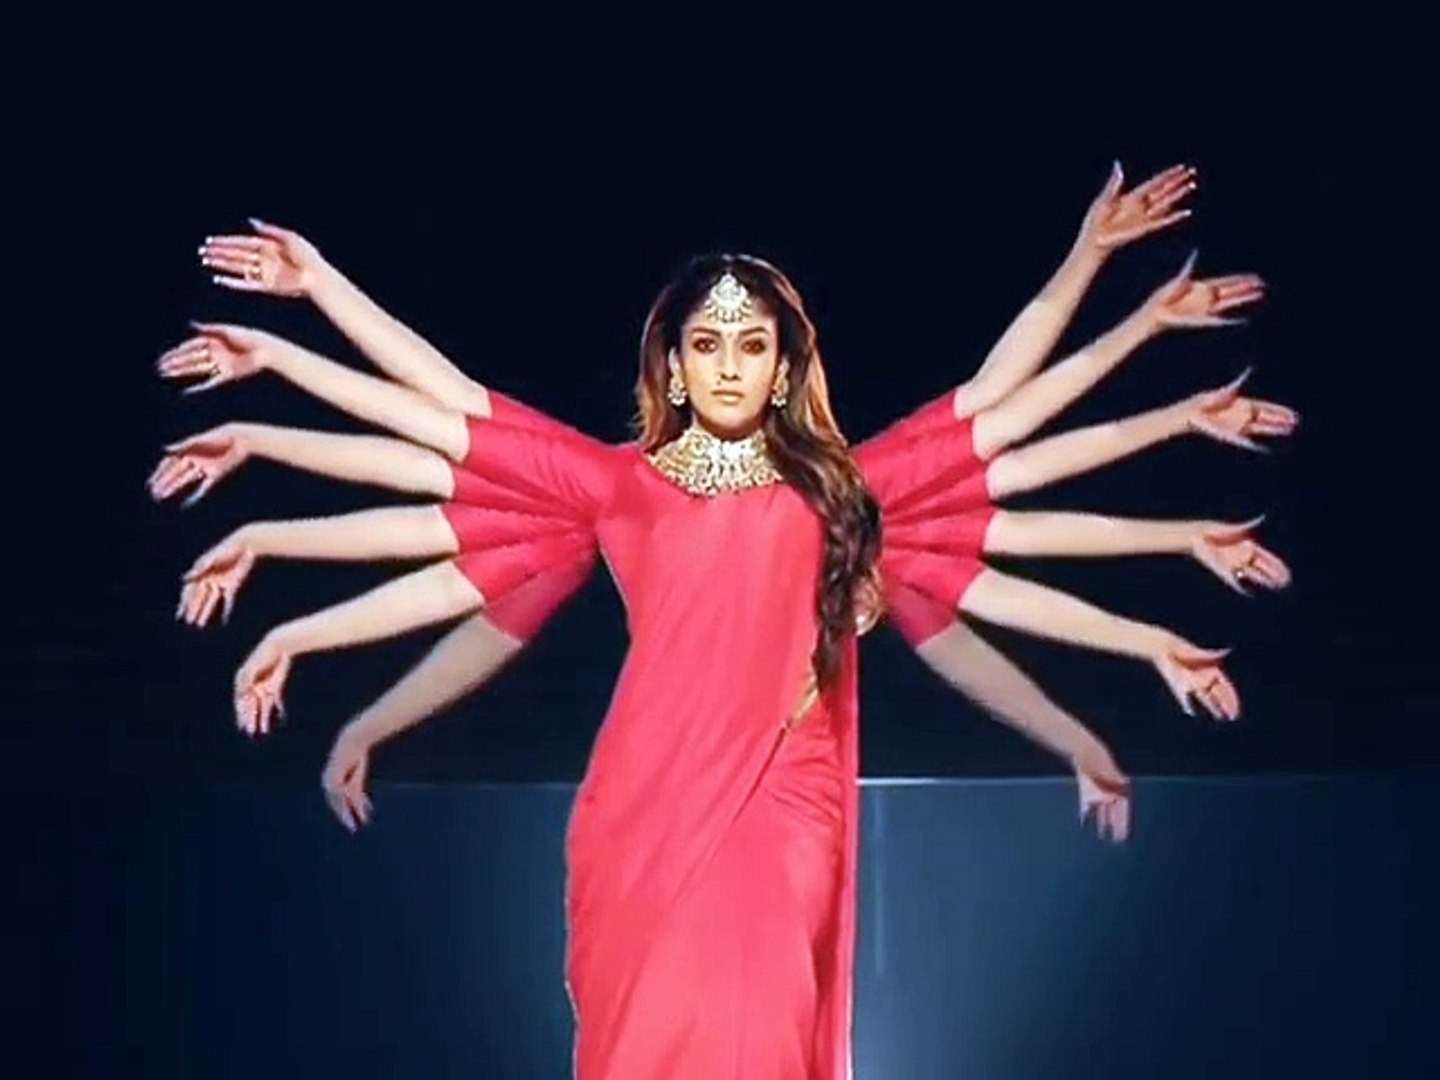 nayanthara amazing performance/A.R.Rahman music/that crazygirl